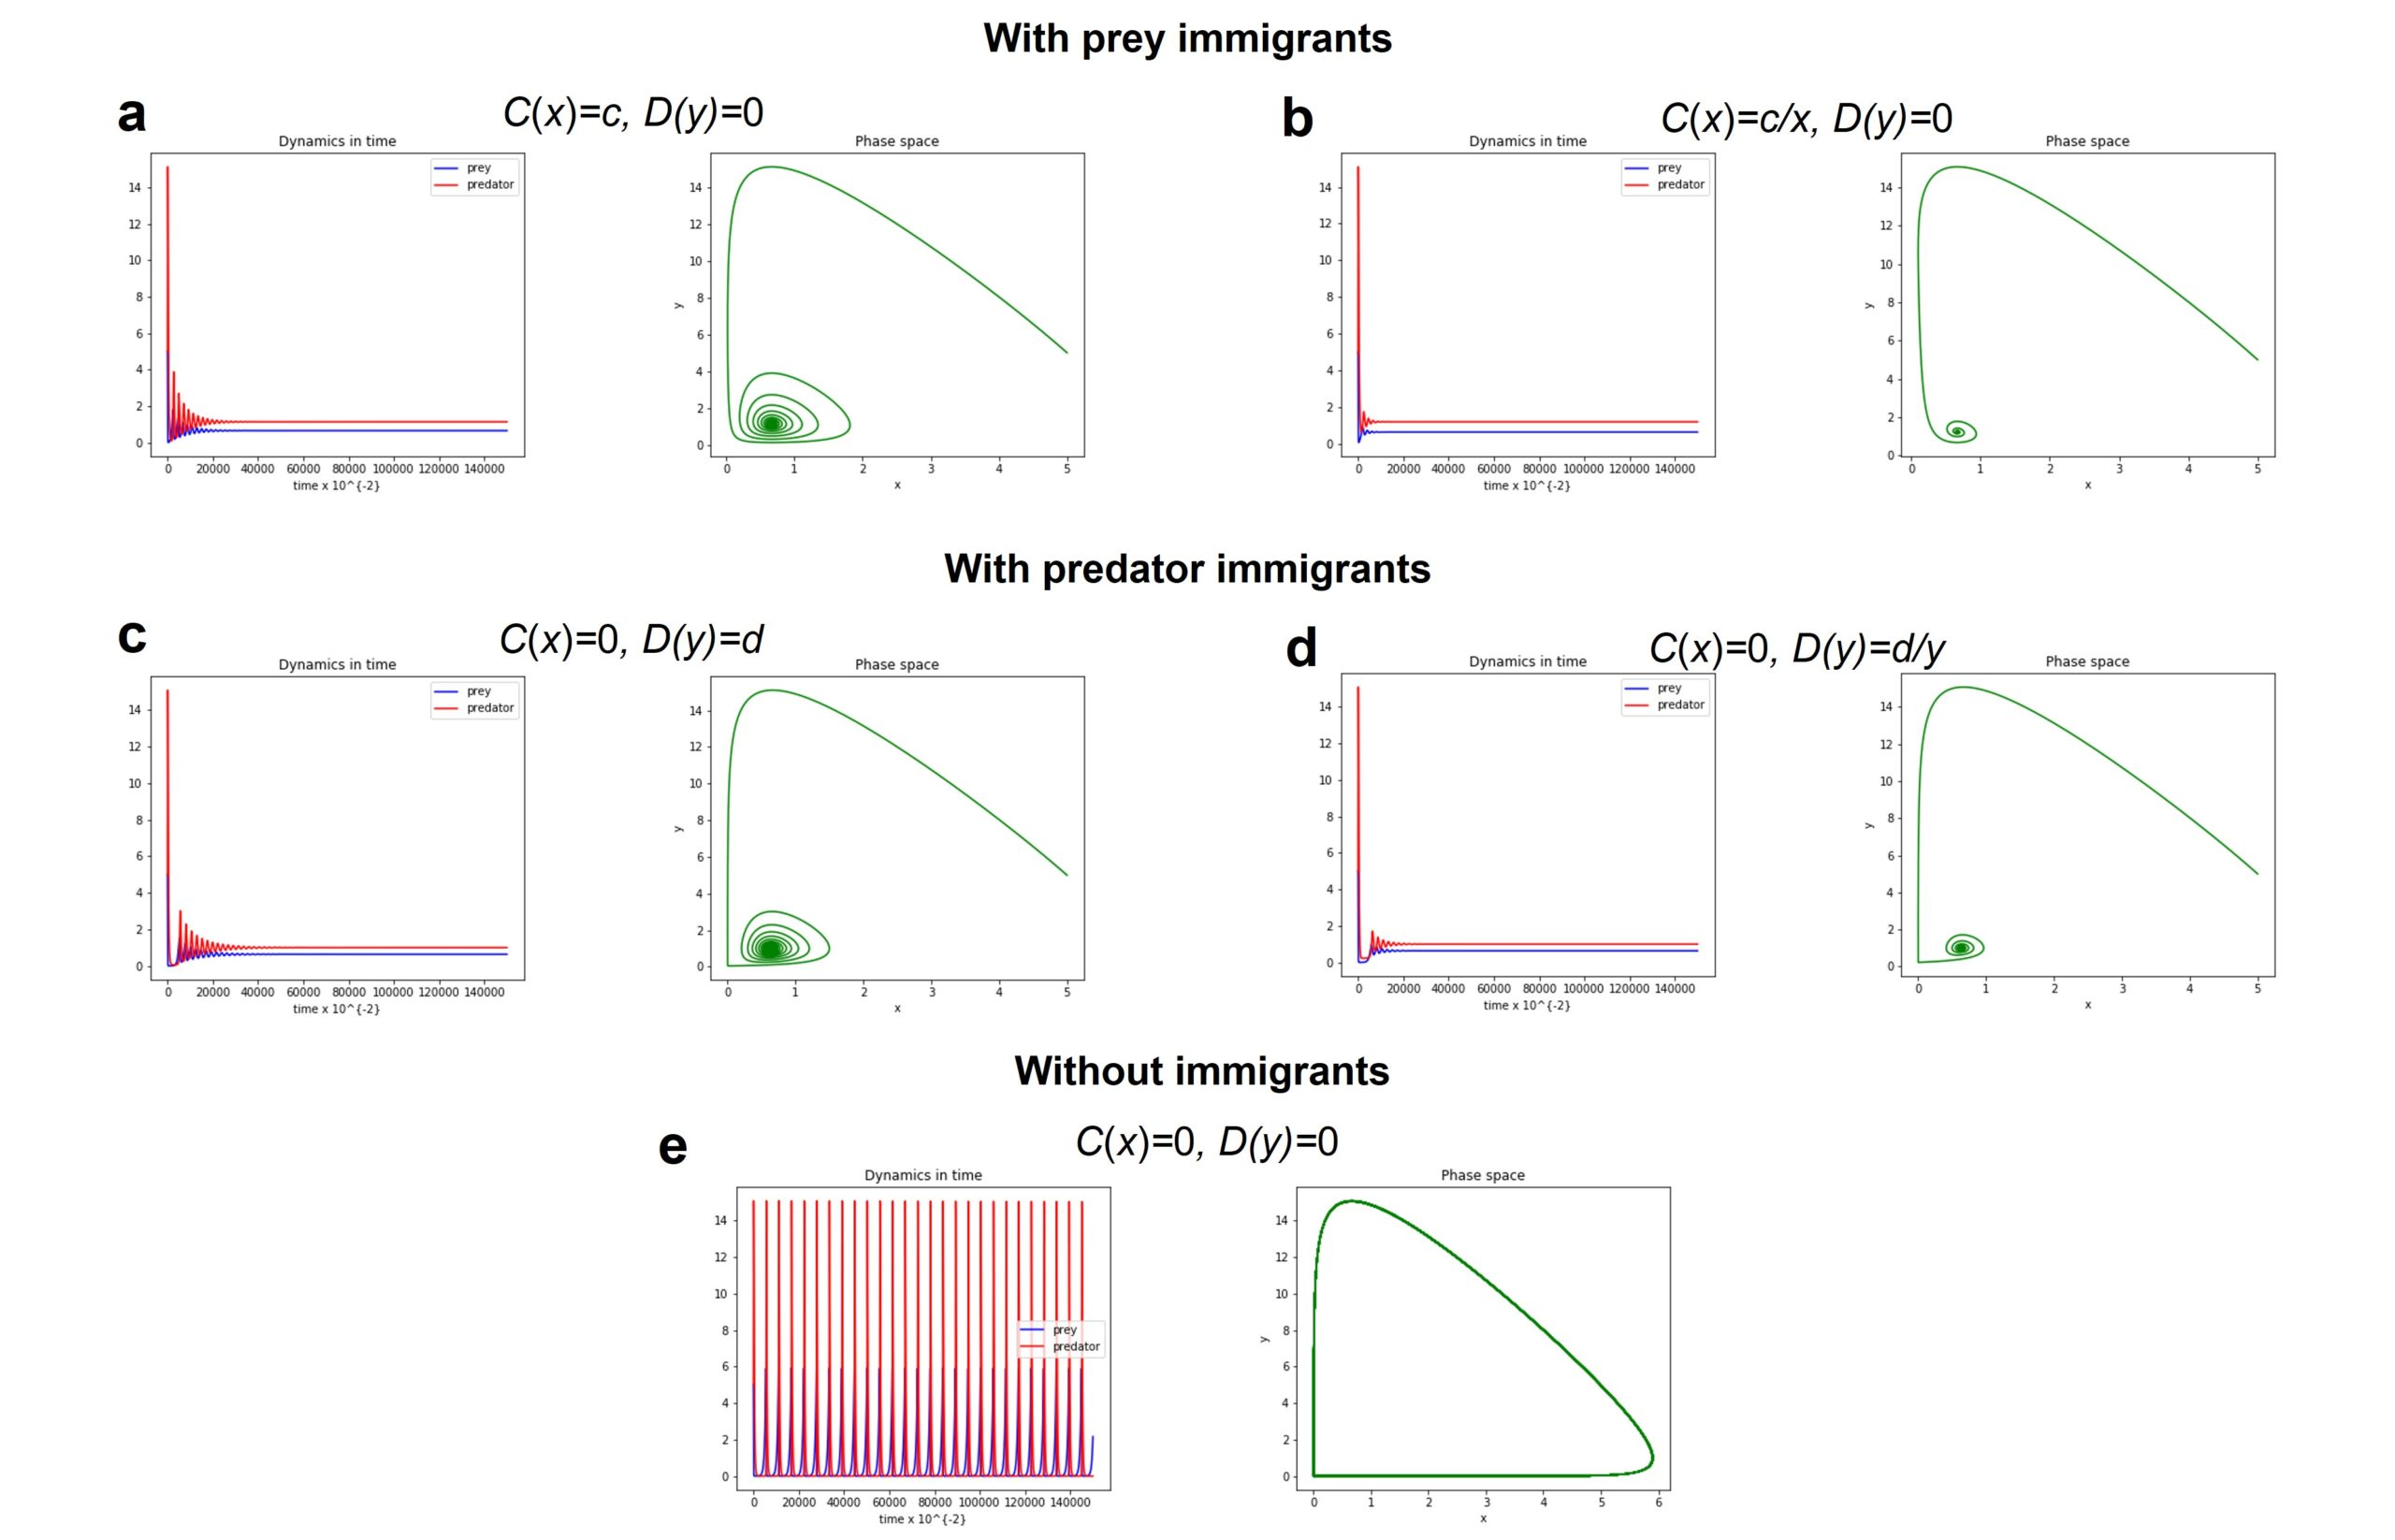 Phase space and long-term population dynamics of the predator-prey population described by LV system (1) with type I functional response and with/without small immigrants.